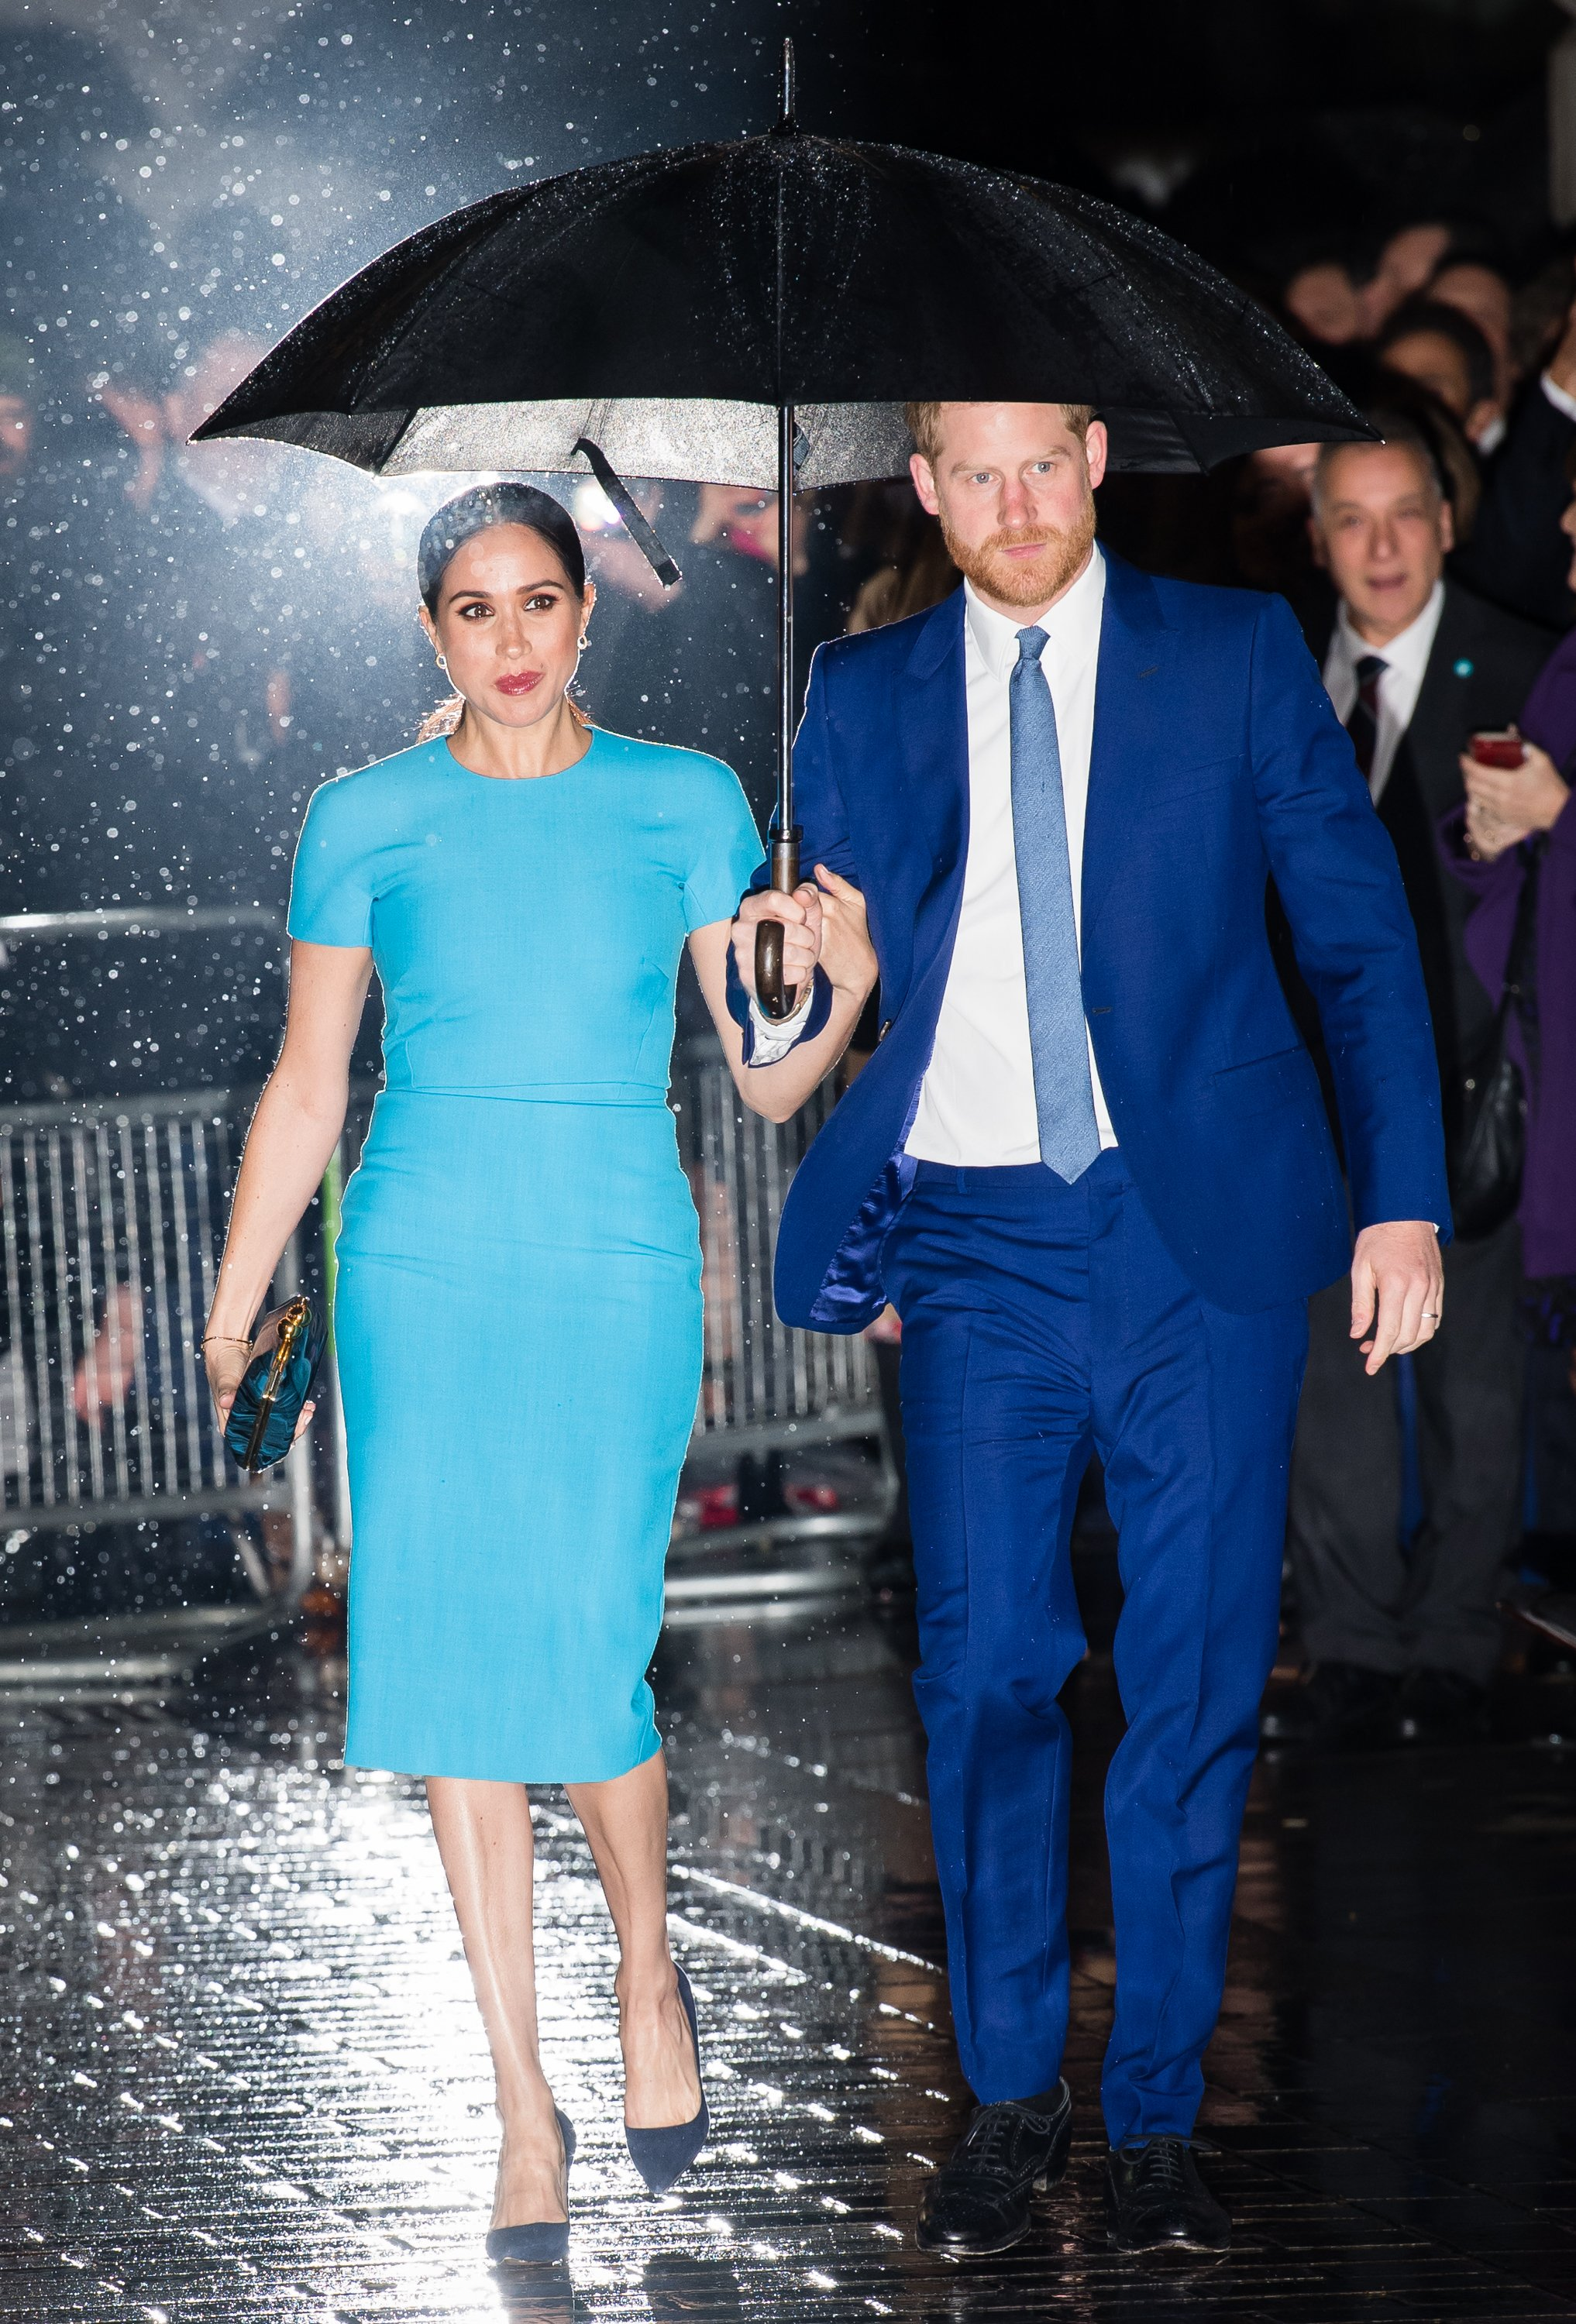 Prince Harry and Meghan Markle attend The Endeavour Fund Awards on March 05, 2020, in London, England   Photo: Getty Images.